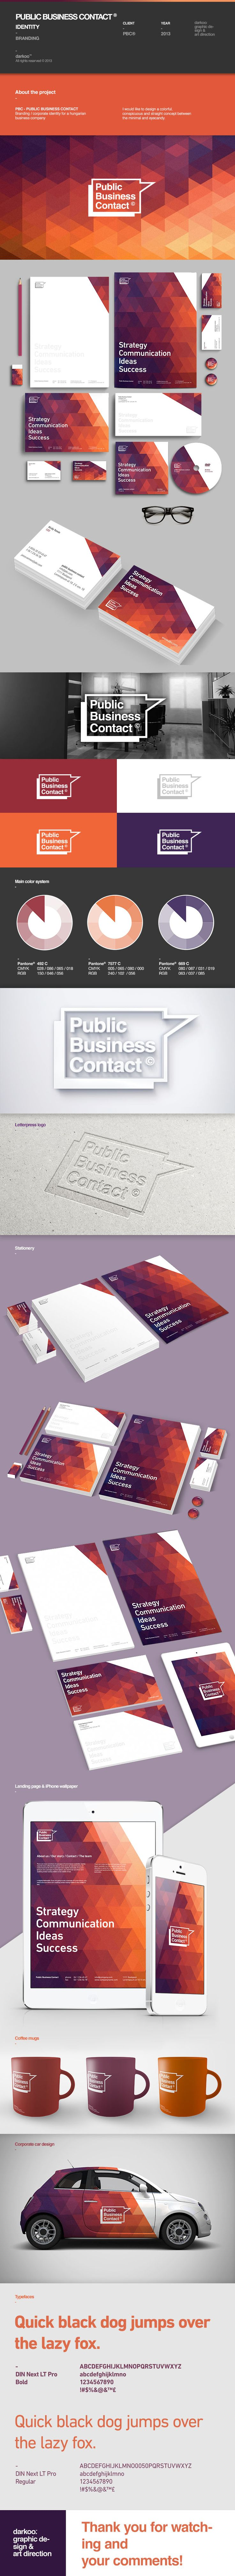 PBC© corporate identity - via @Behance - http://www.behance.net/gallery/PBC-corporate-identity/11172001